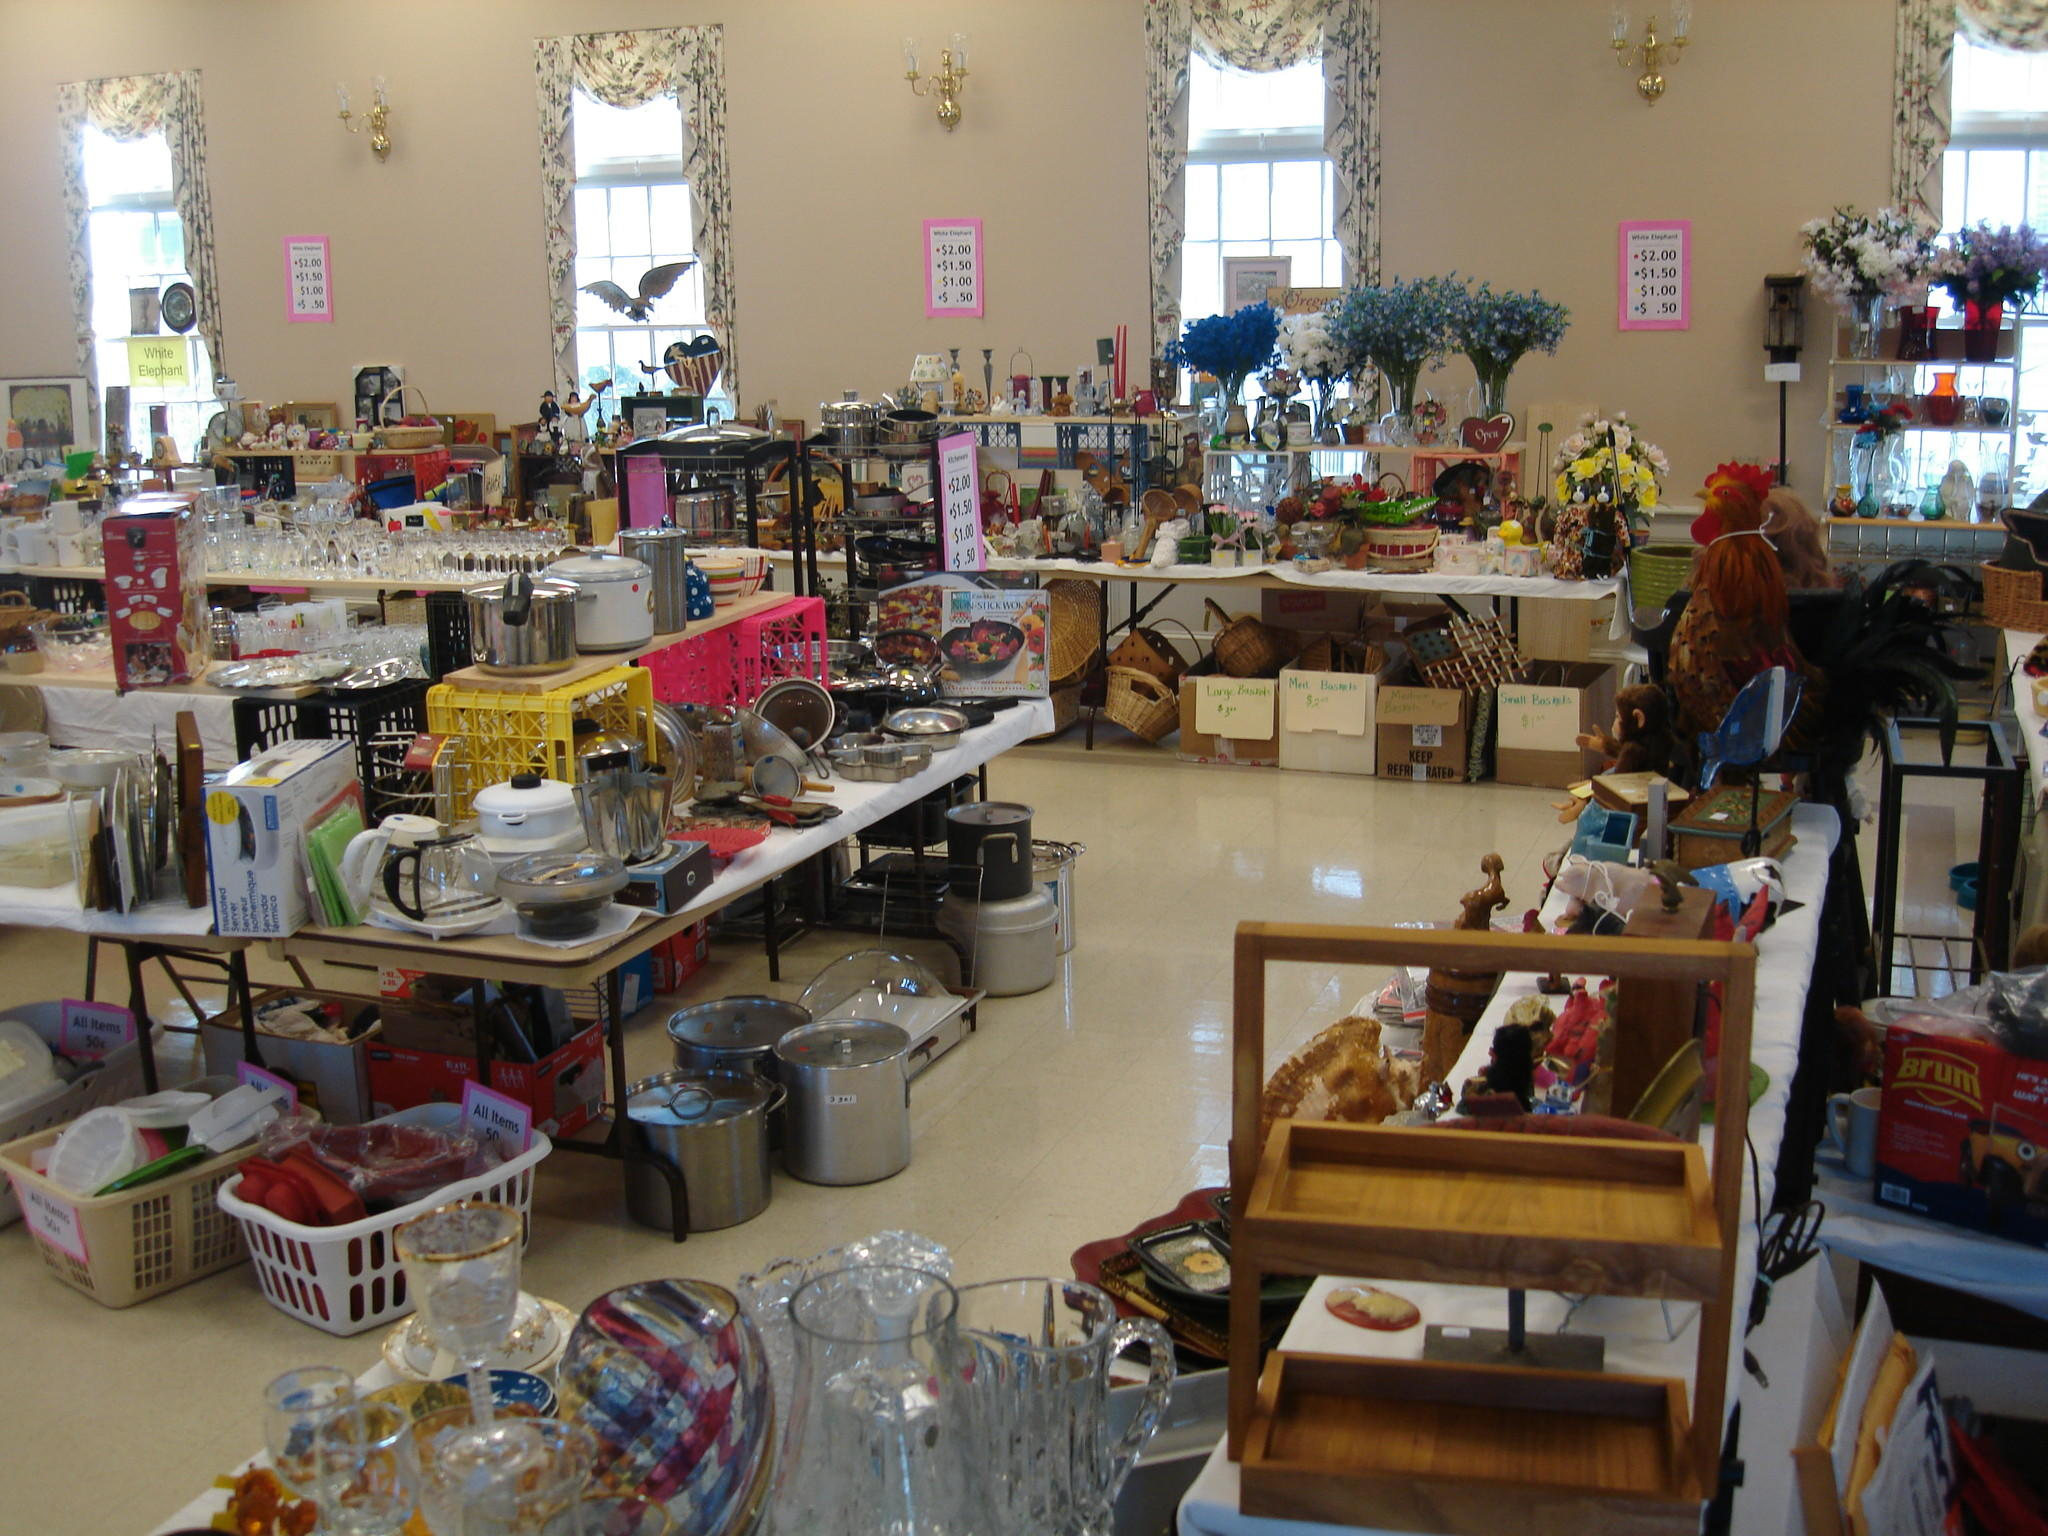 Rummage Sale at Avon Congregational Church has tables full of treasures.